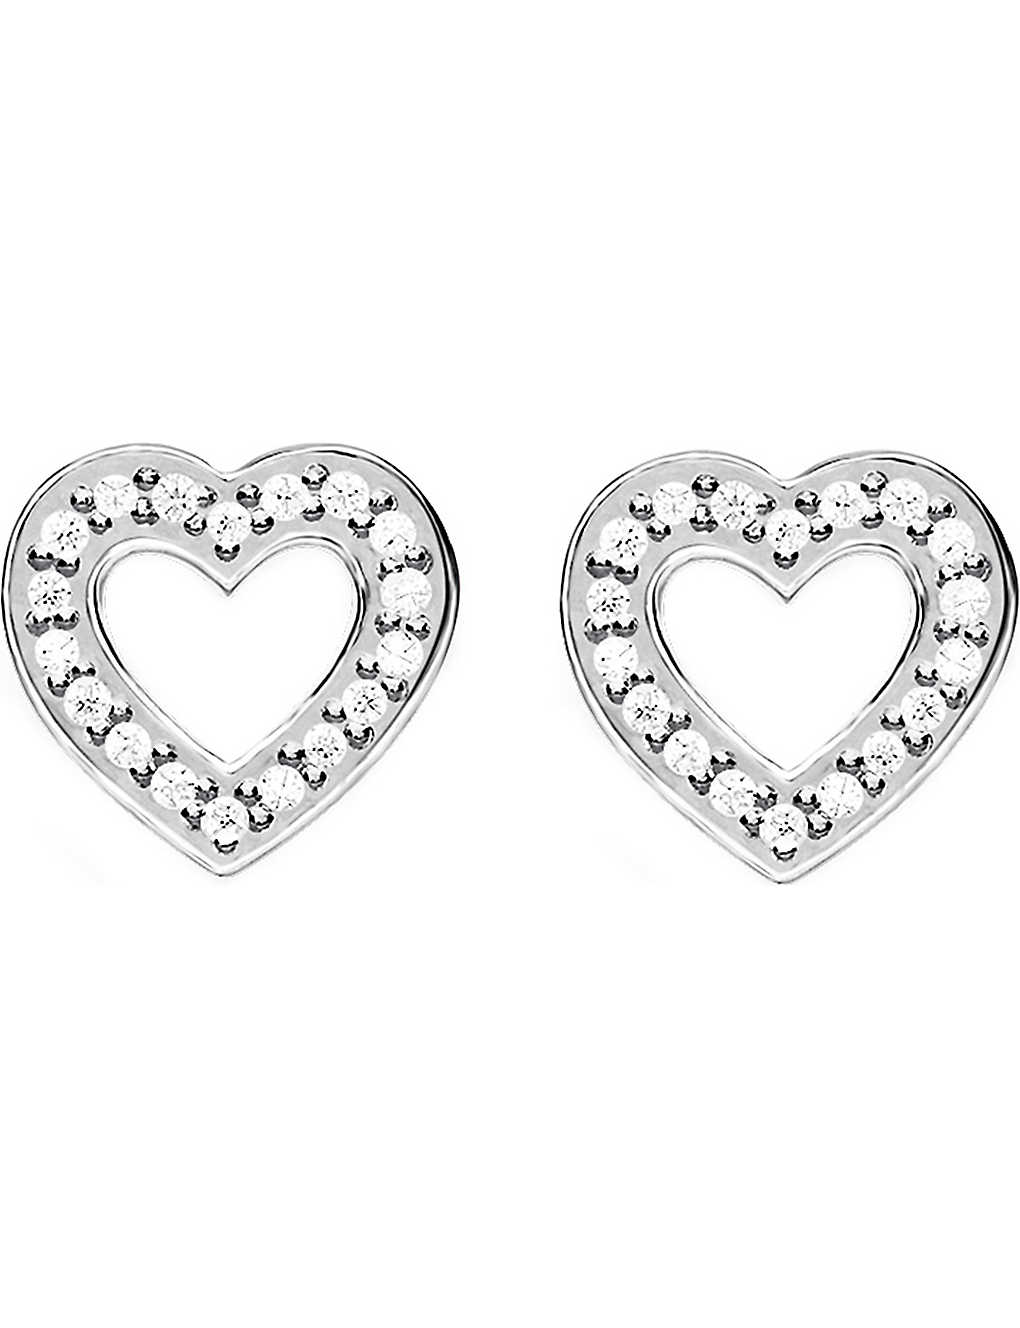 d2c5d7ea1 THOMAS SABO - Glam & Soul sterling silver and diamond earrings ...